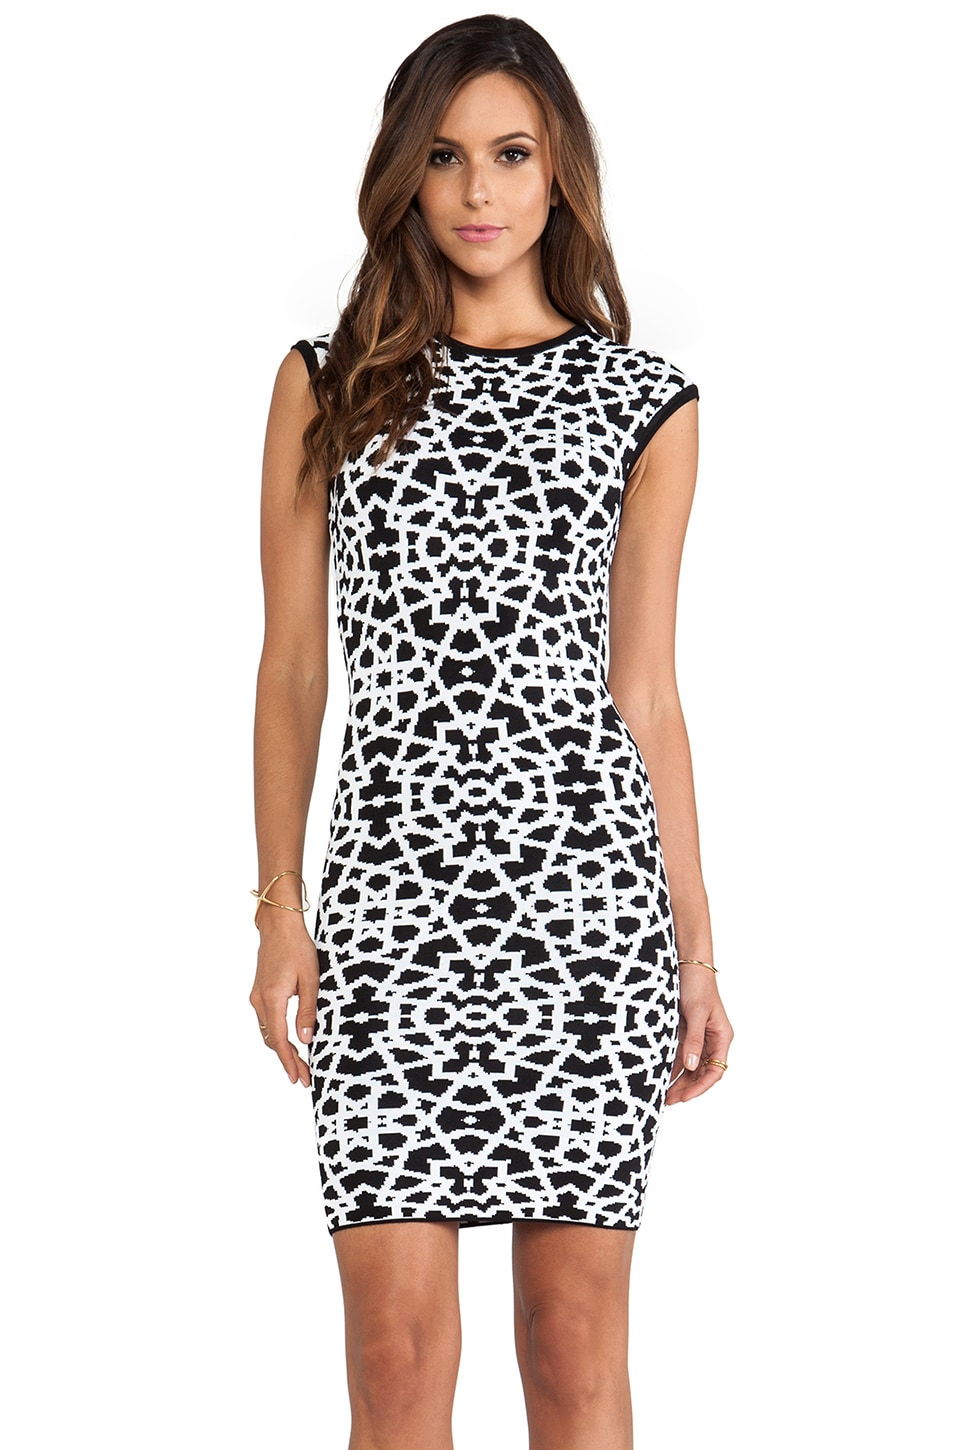 Torn by Ronny Kobo Victoria Dress in Black & White